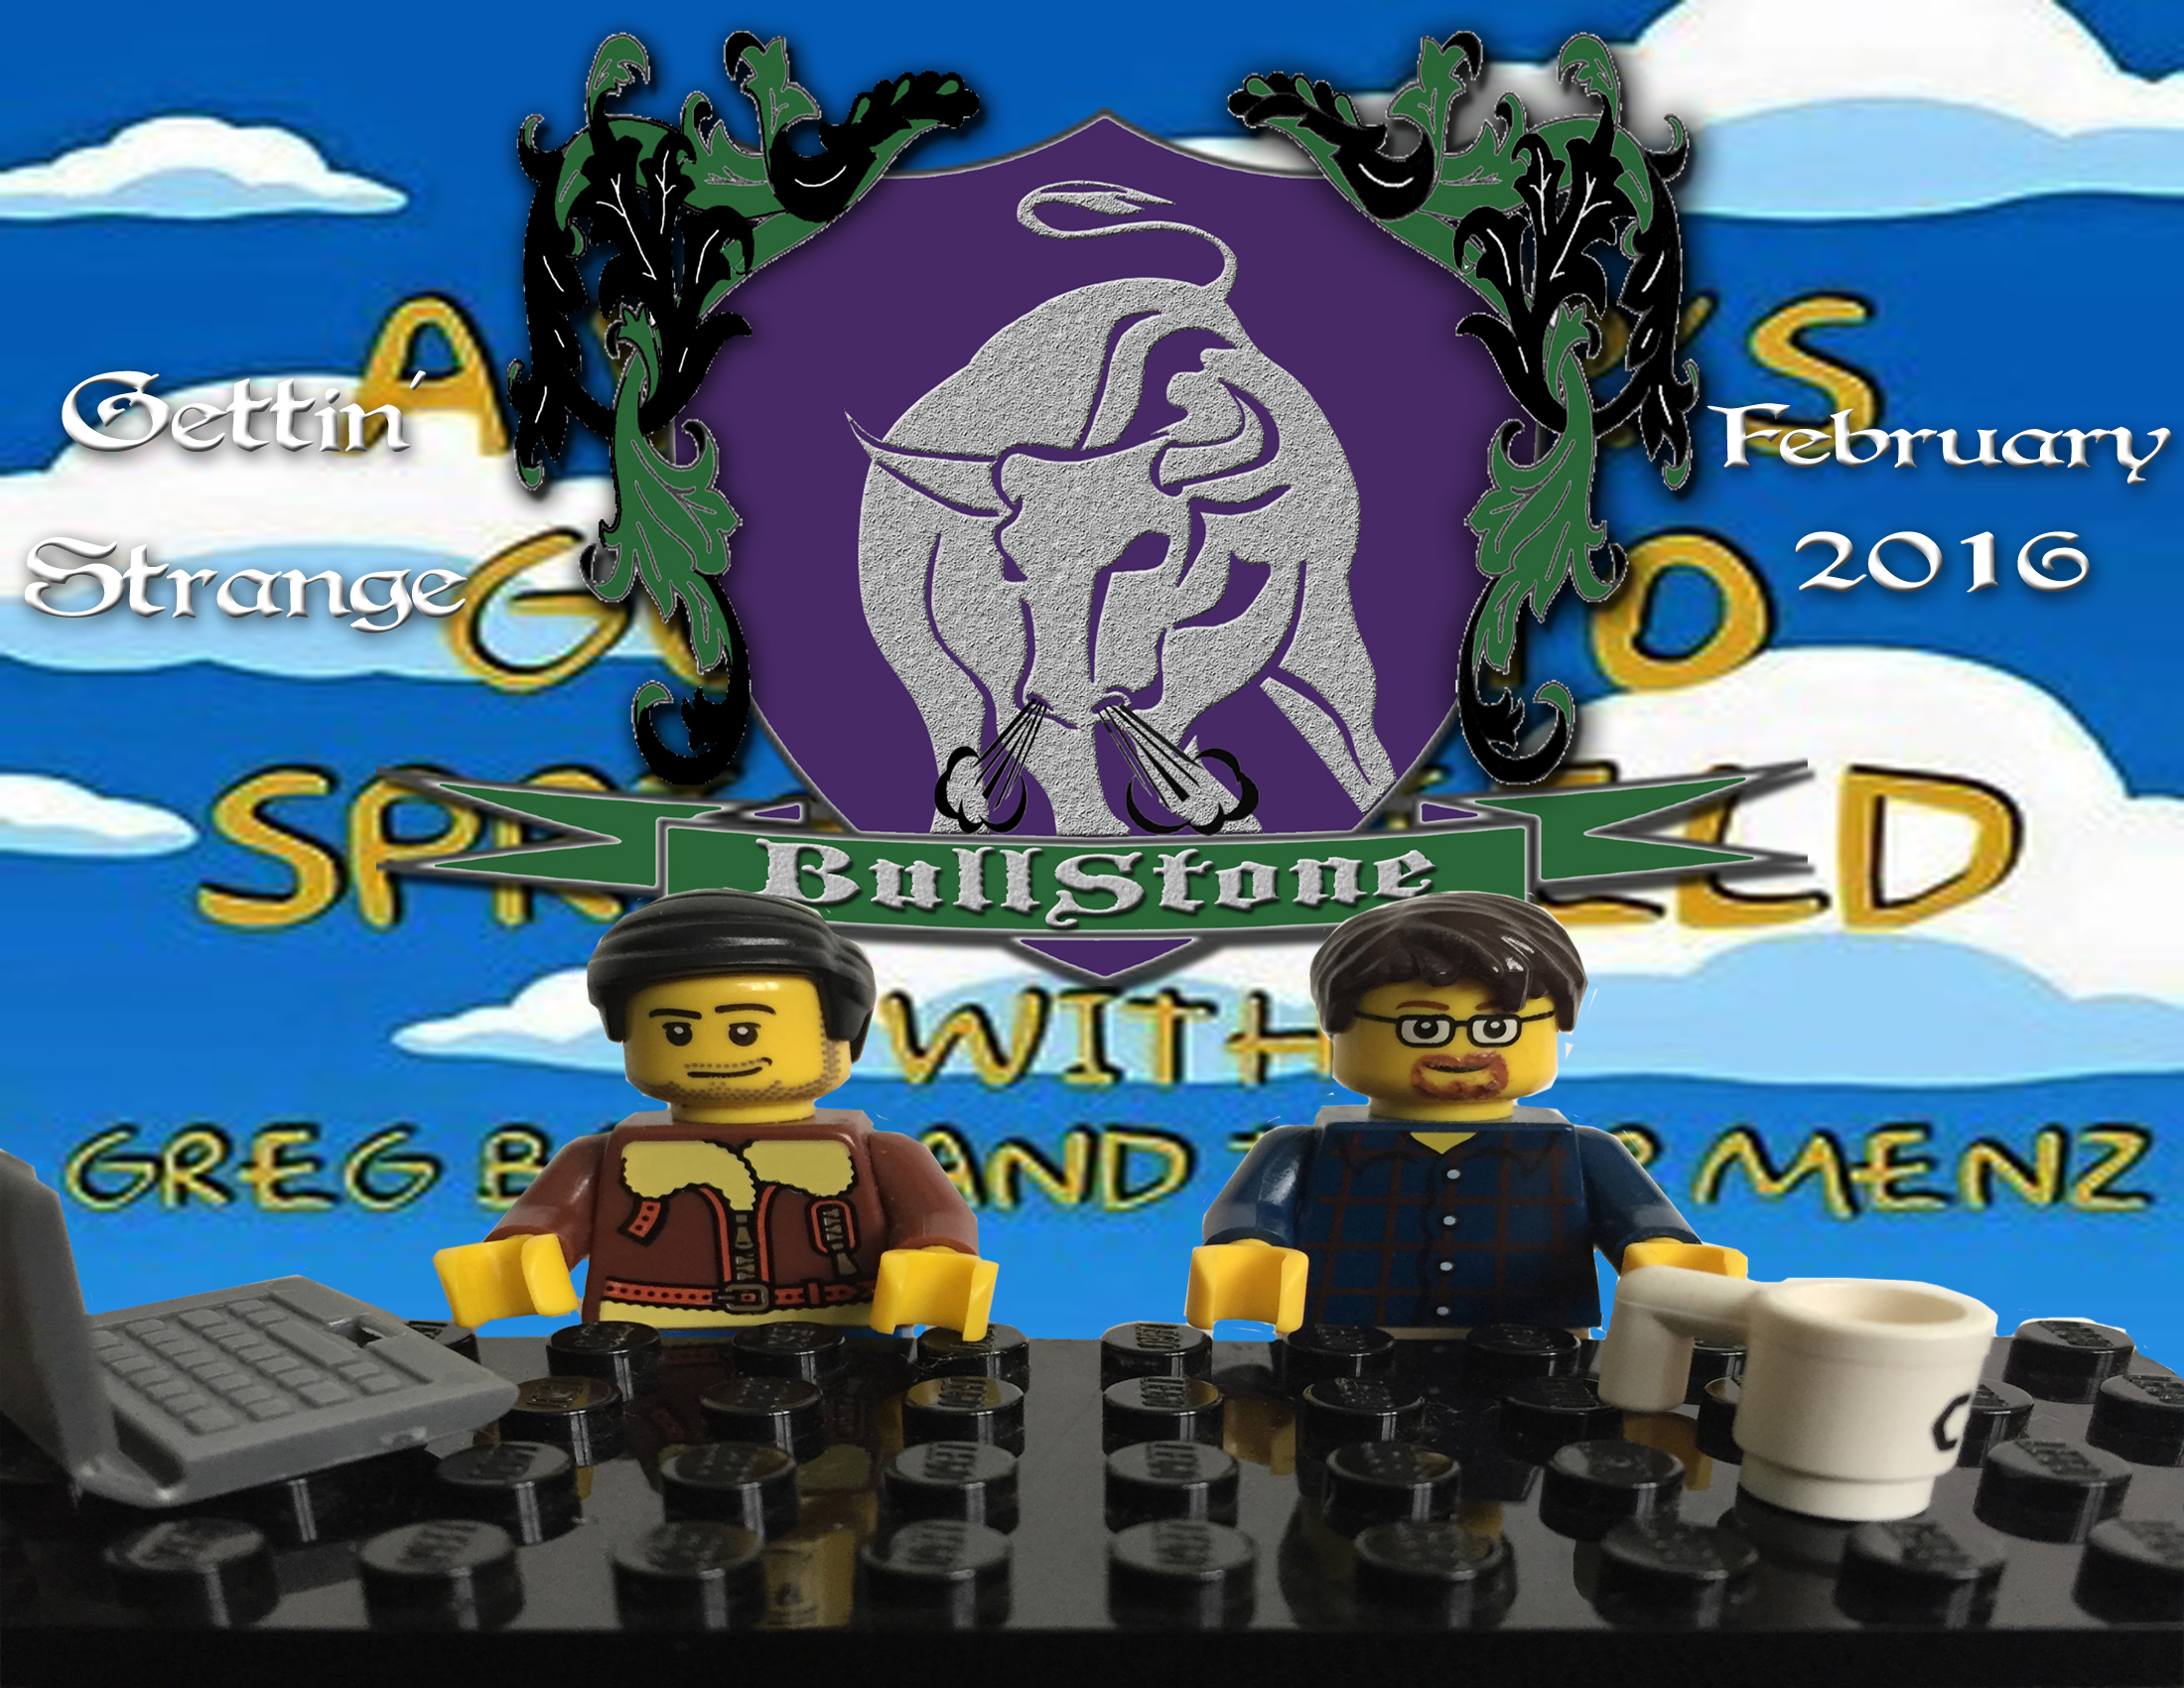 BullStone 14: A Visitor's Guide to Springfield, February 2016